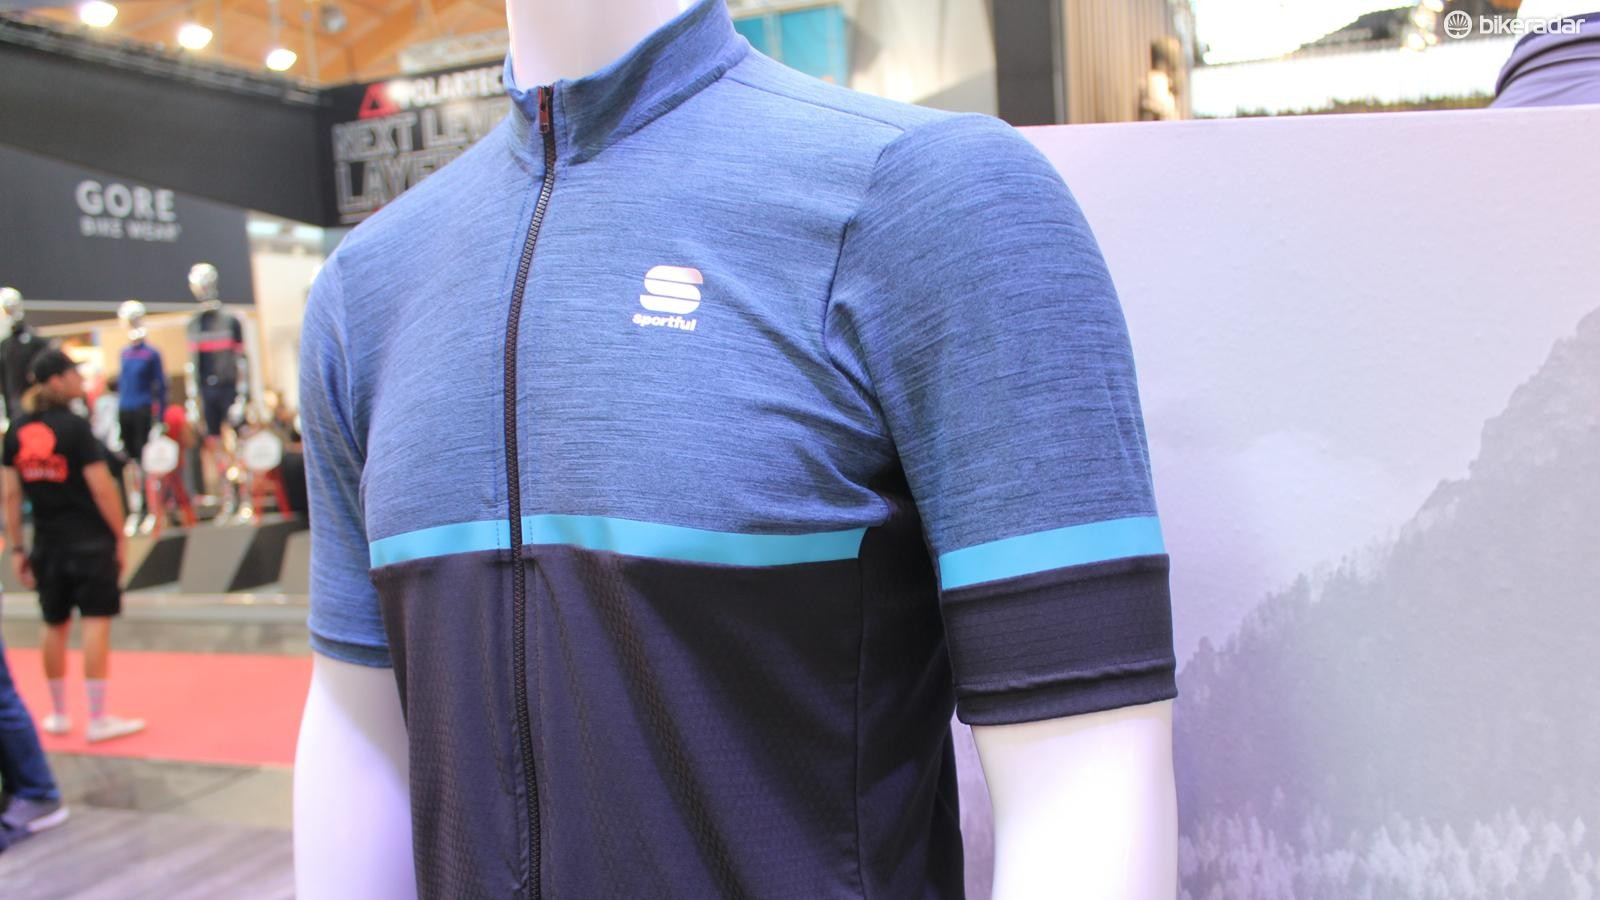 Sportful's gravel jersey, the Giara